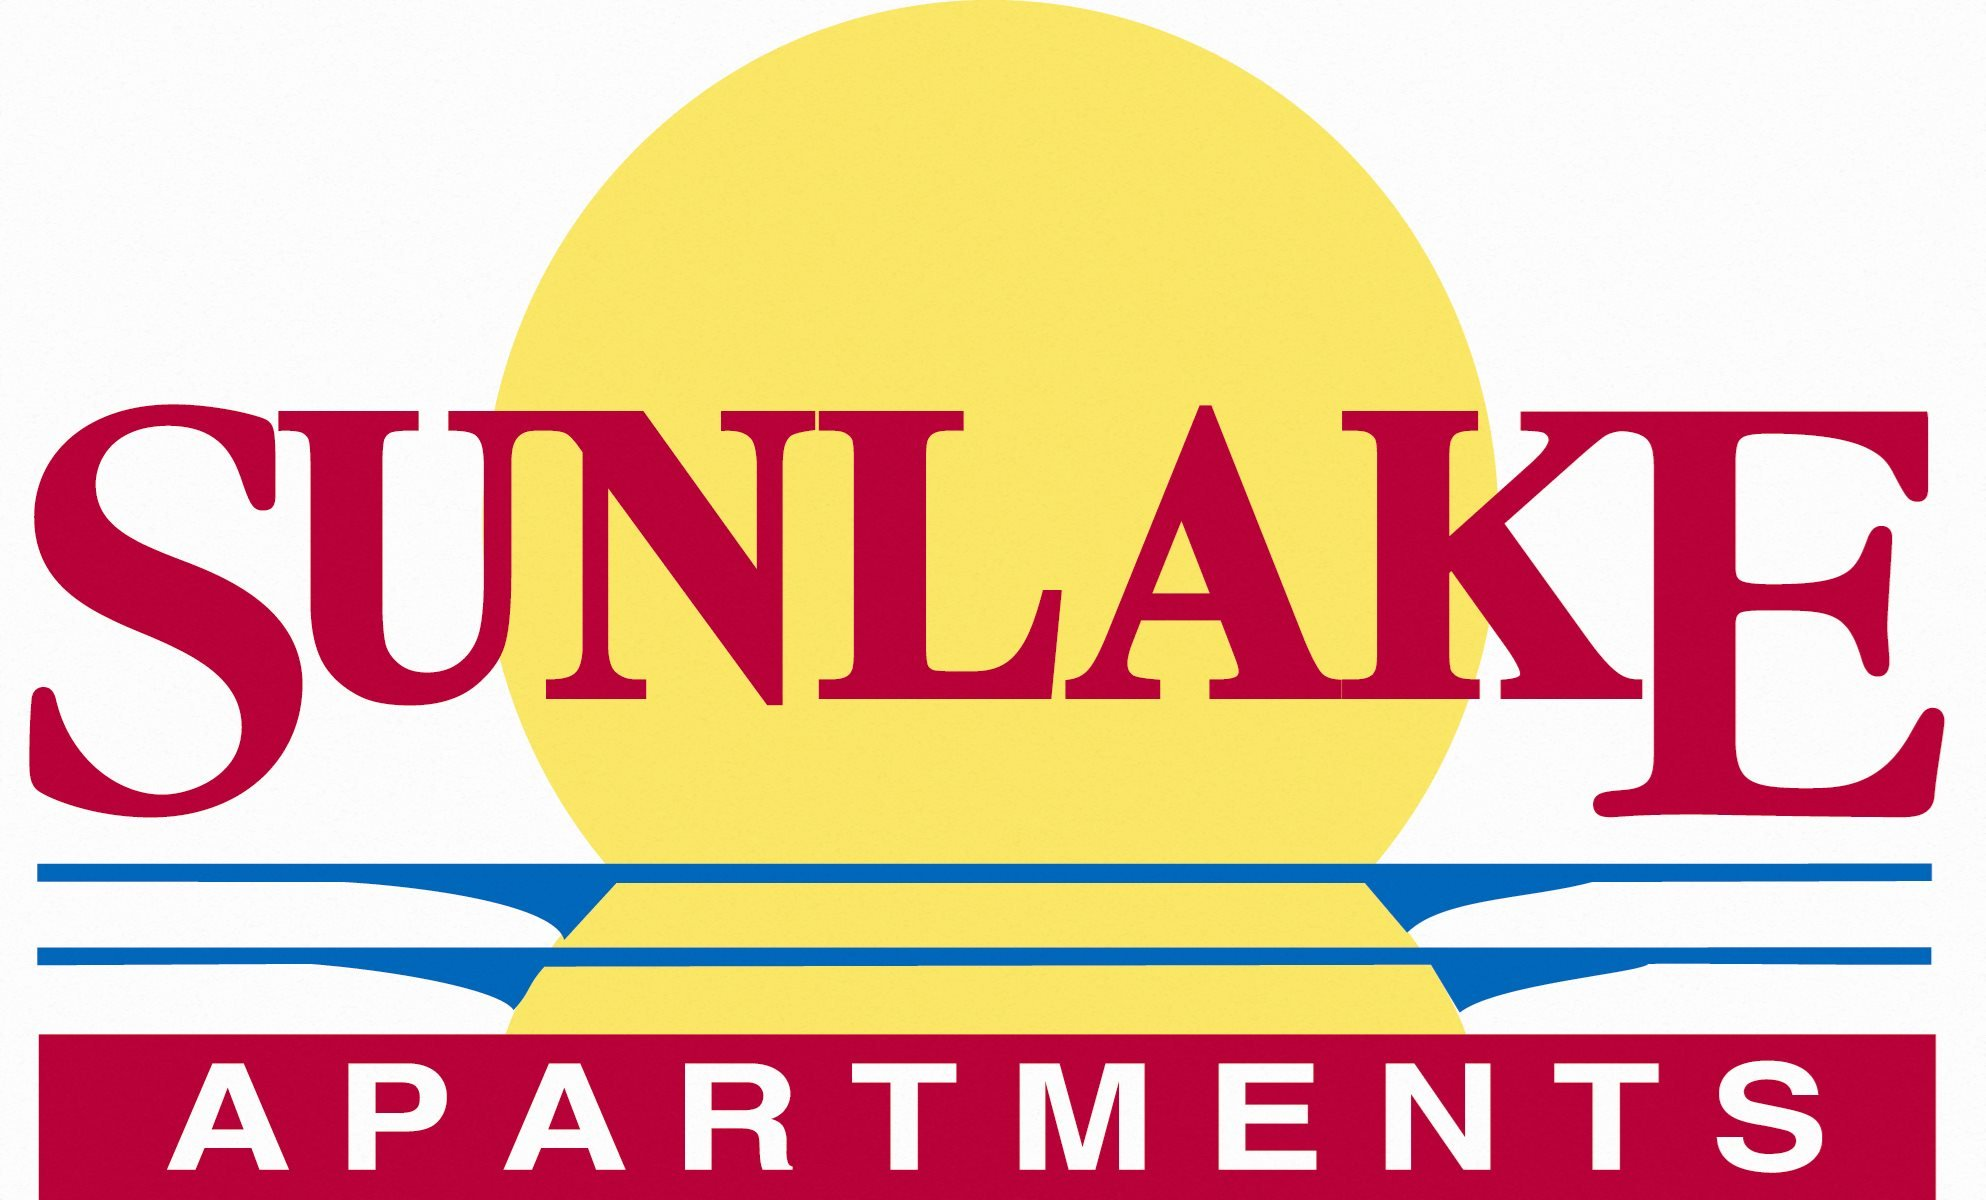 Sunlake Apartments Property Logo 26